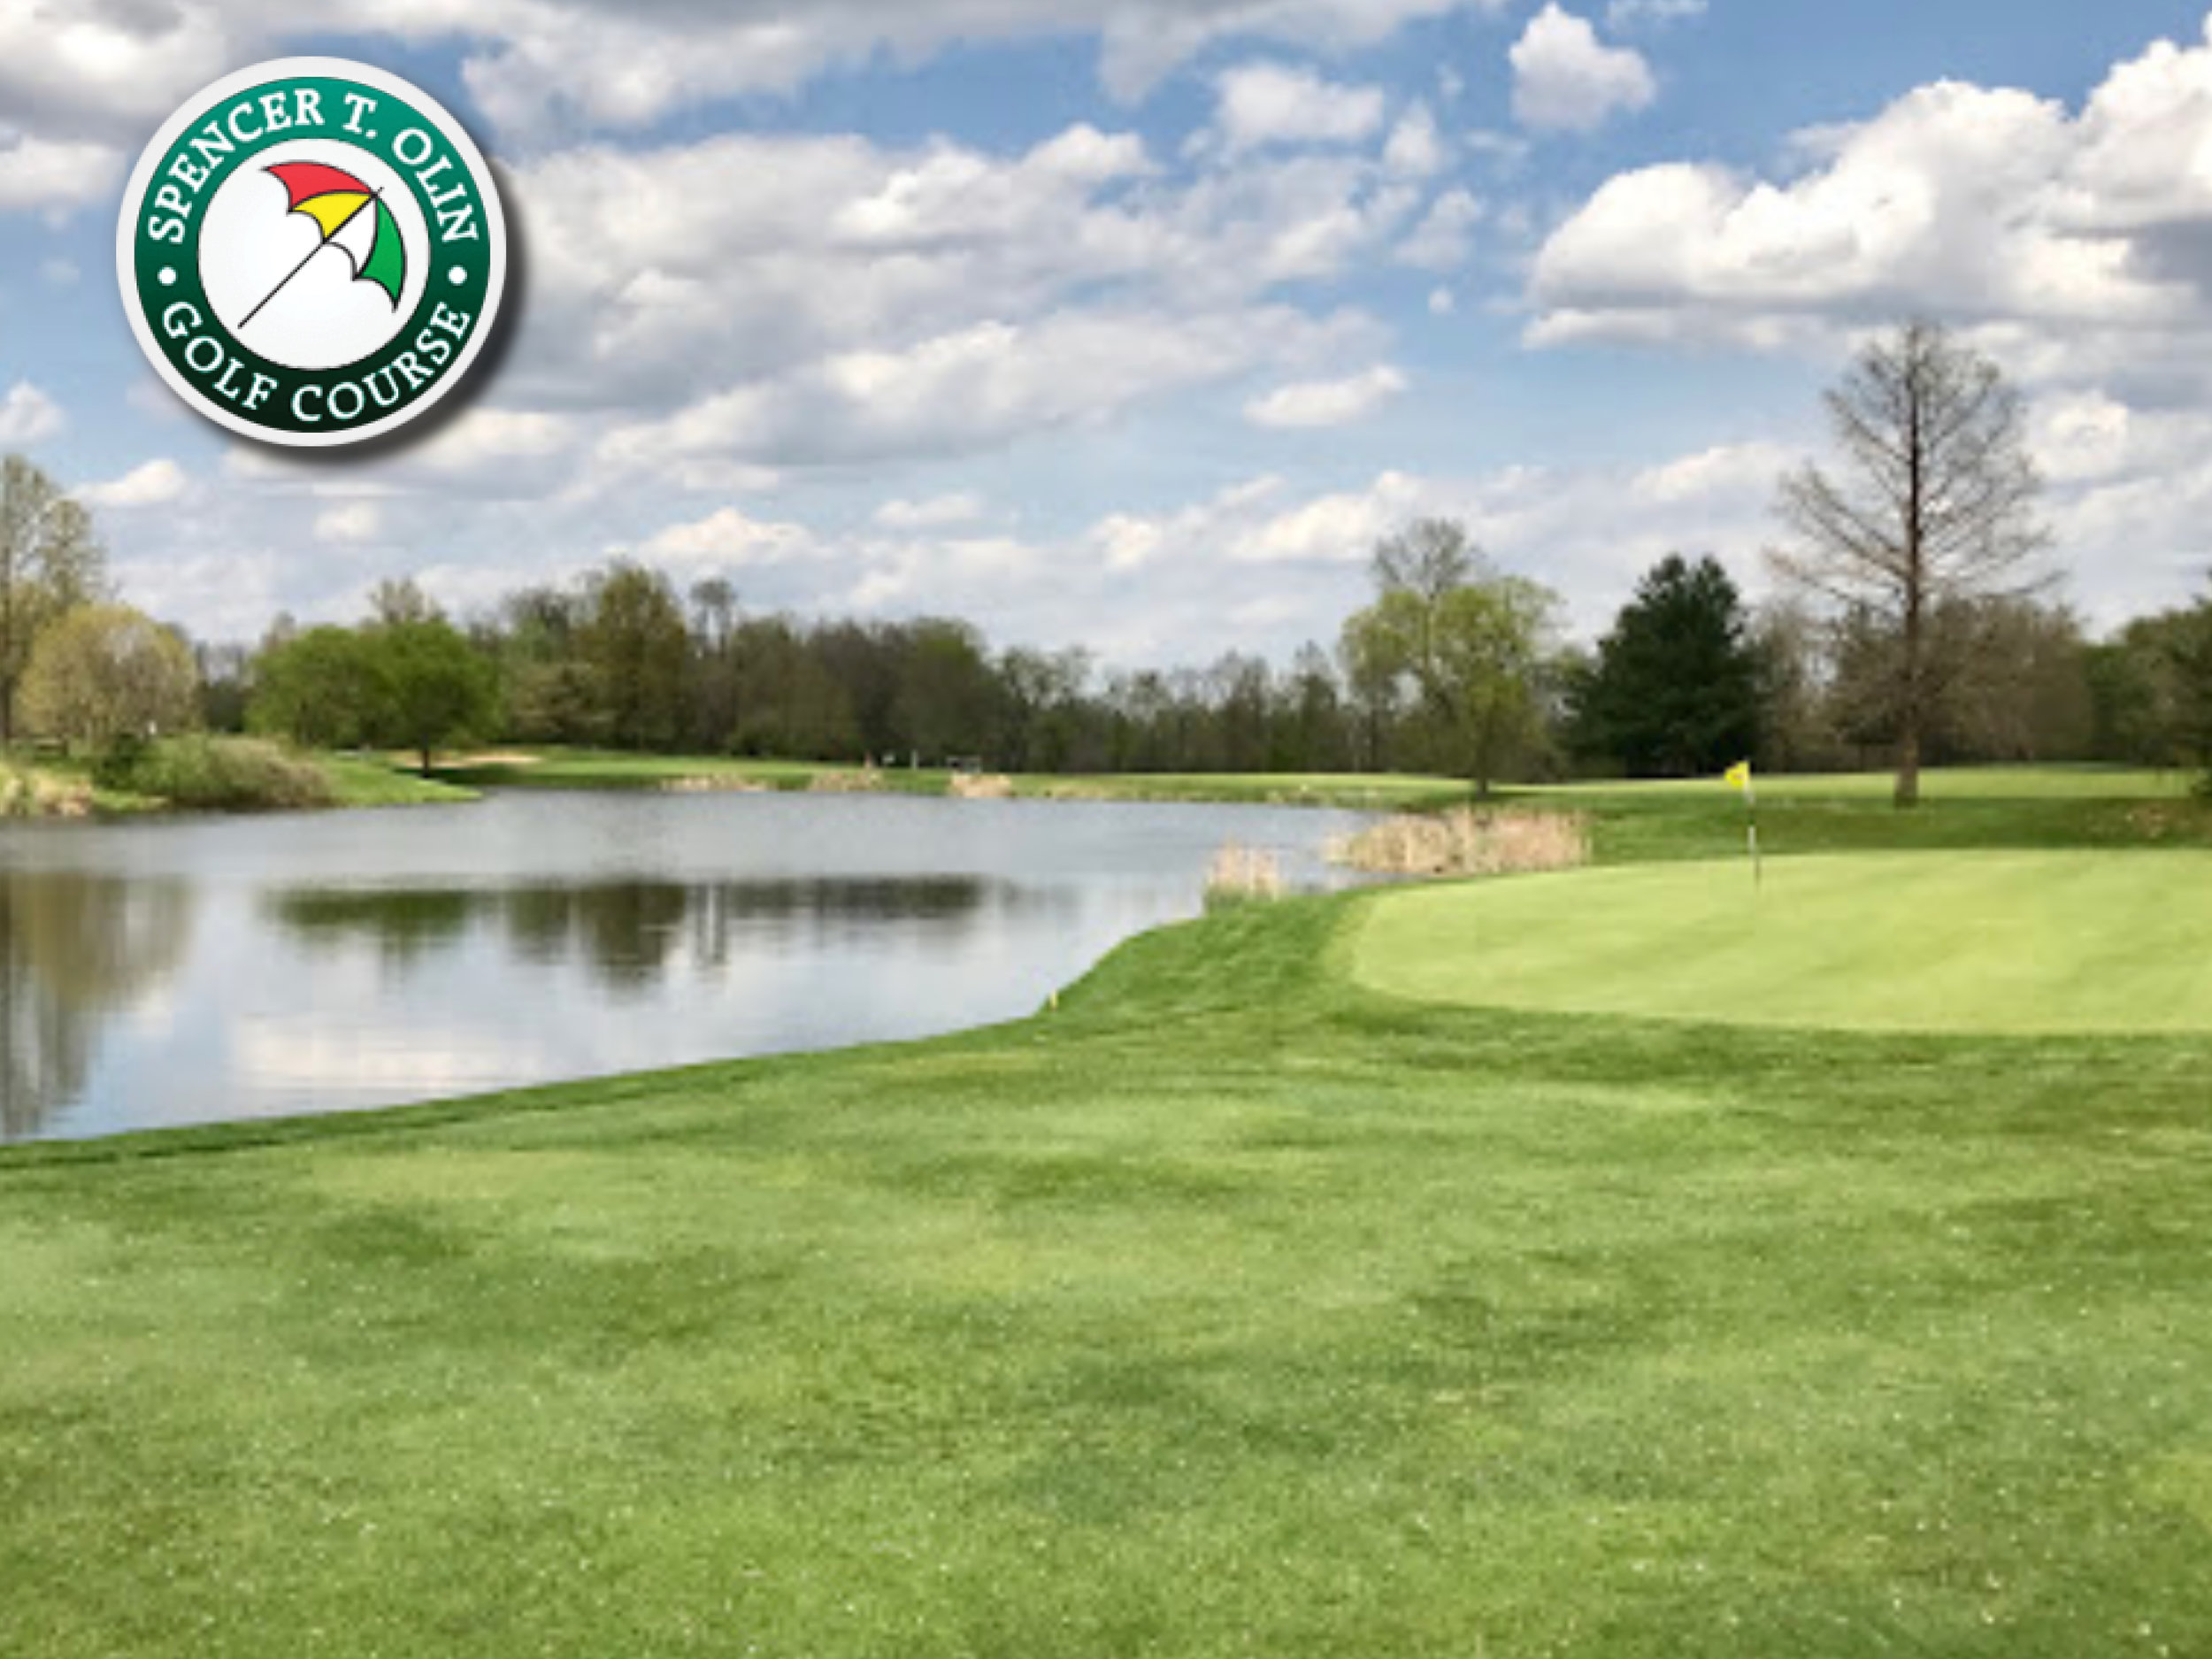 Alton, IL - Spencer T. Olin Golf CourseSUNDAY, MAY 19th$95